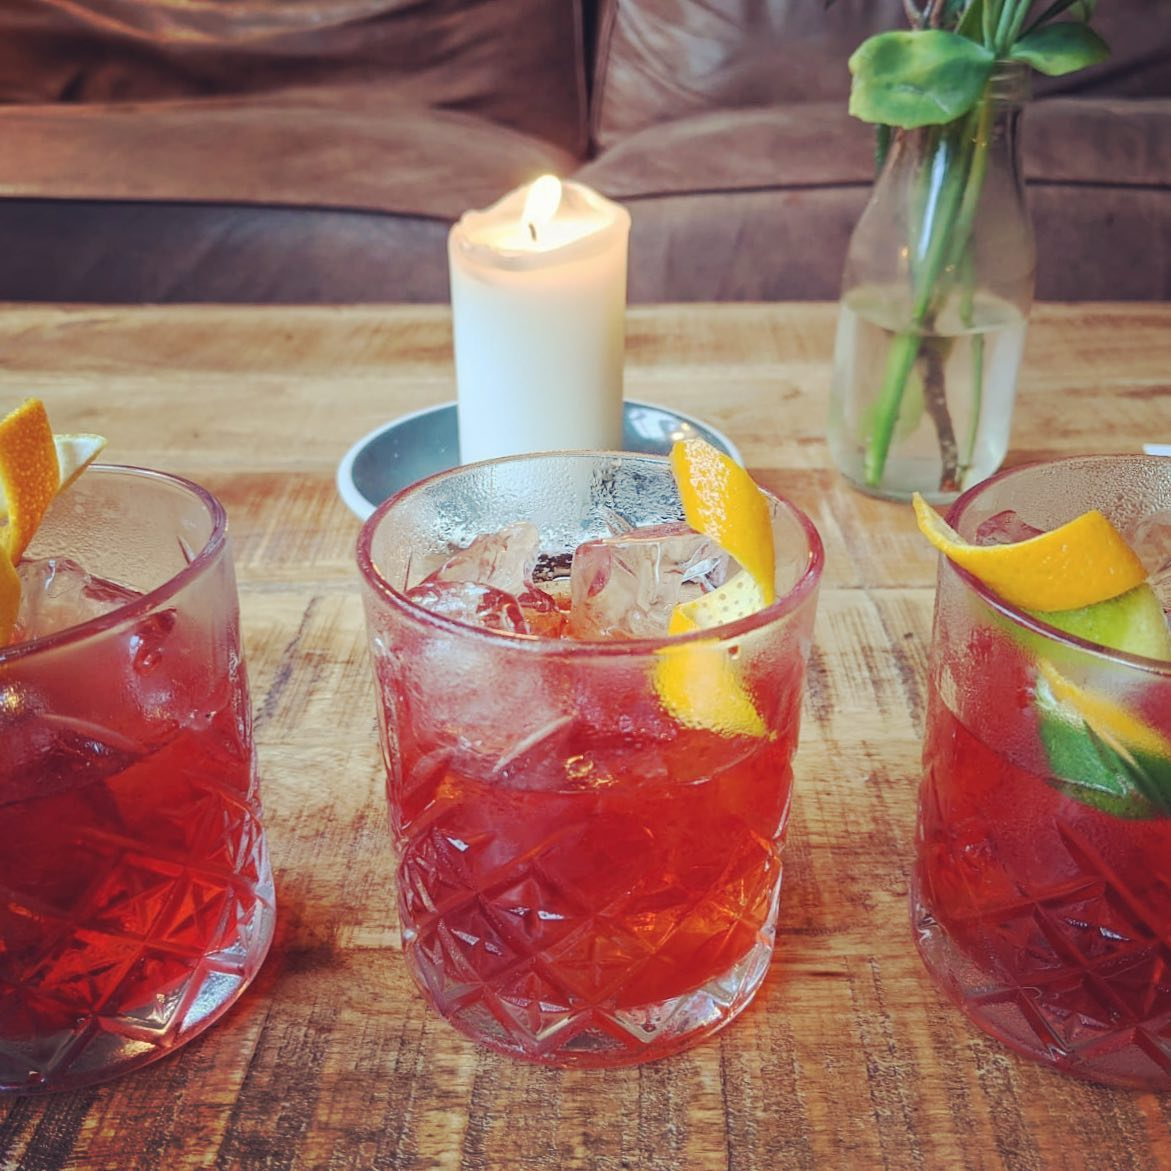 It's Negroni week all week at The Farrier. Come down and try some amazing creations. Tequila negroni anyone? . @portobelloroaddistillery  @halfhitchgin  @timeoutlondon  @mangroveuk  .